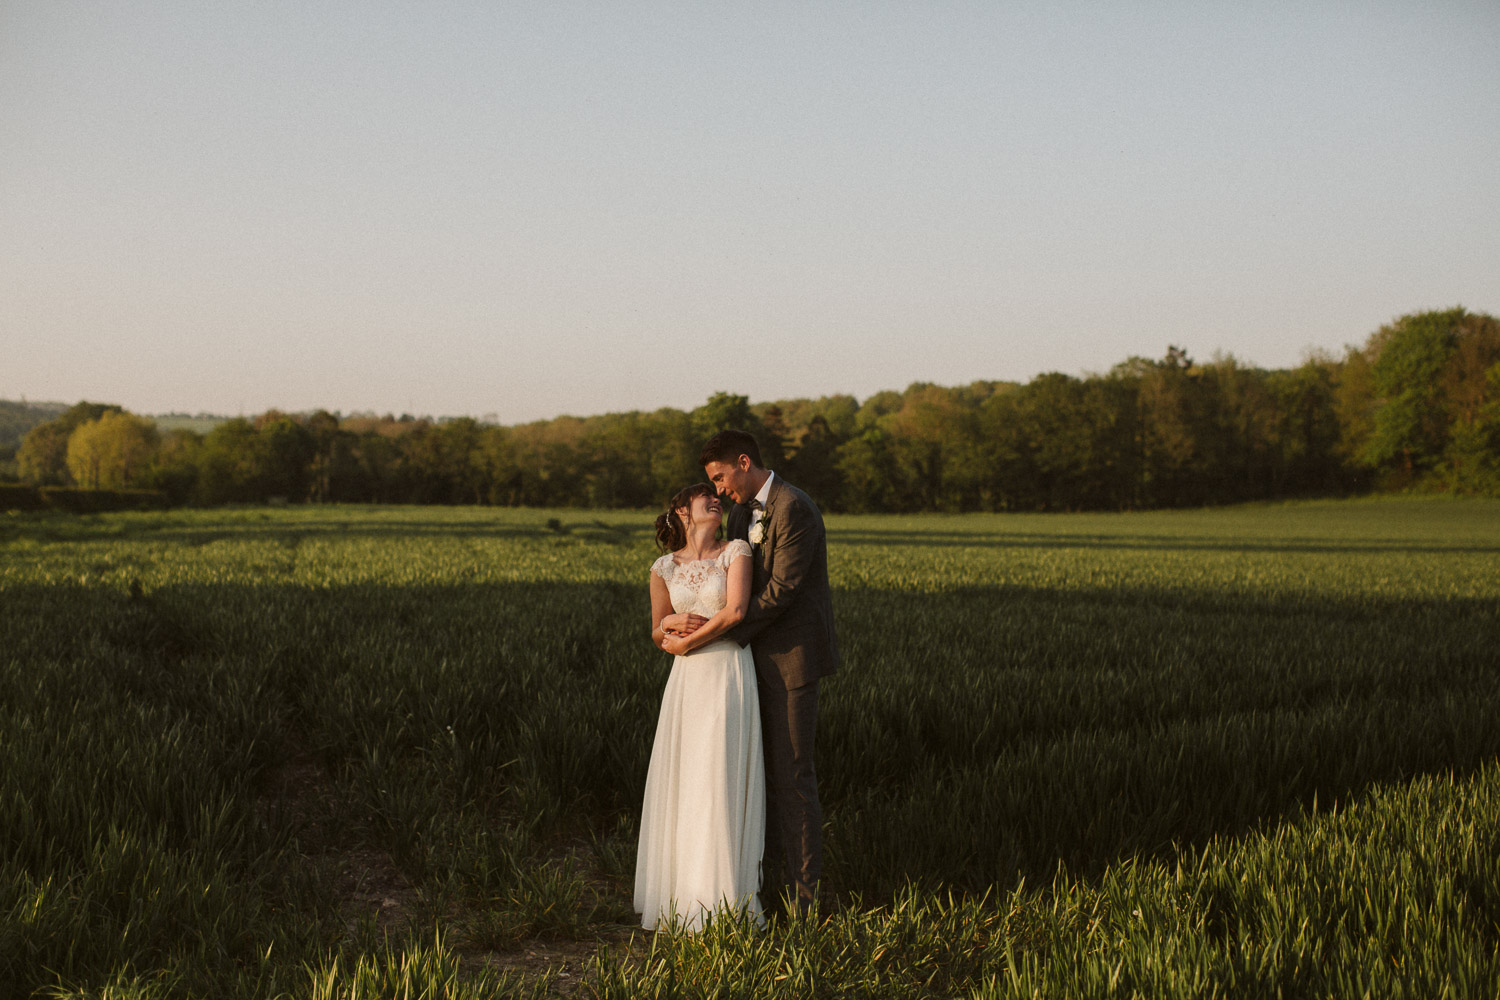 the couple in the field together